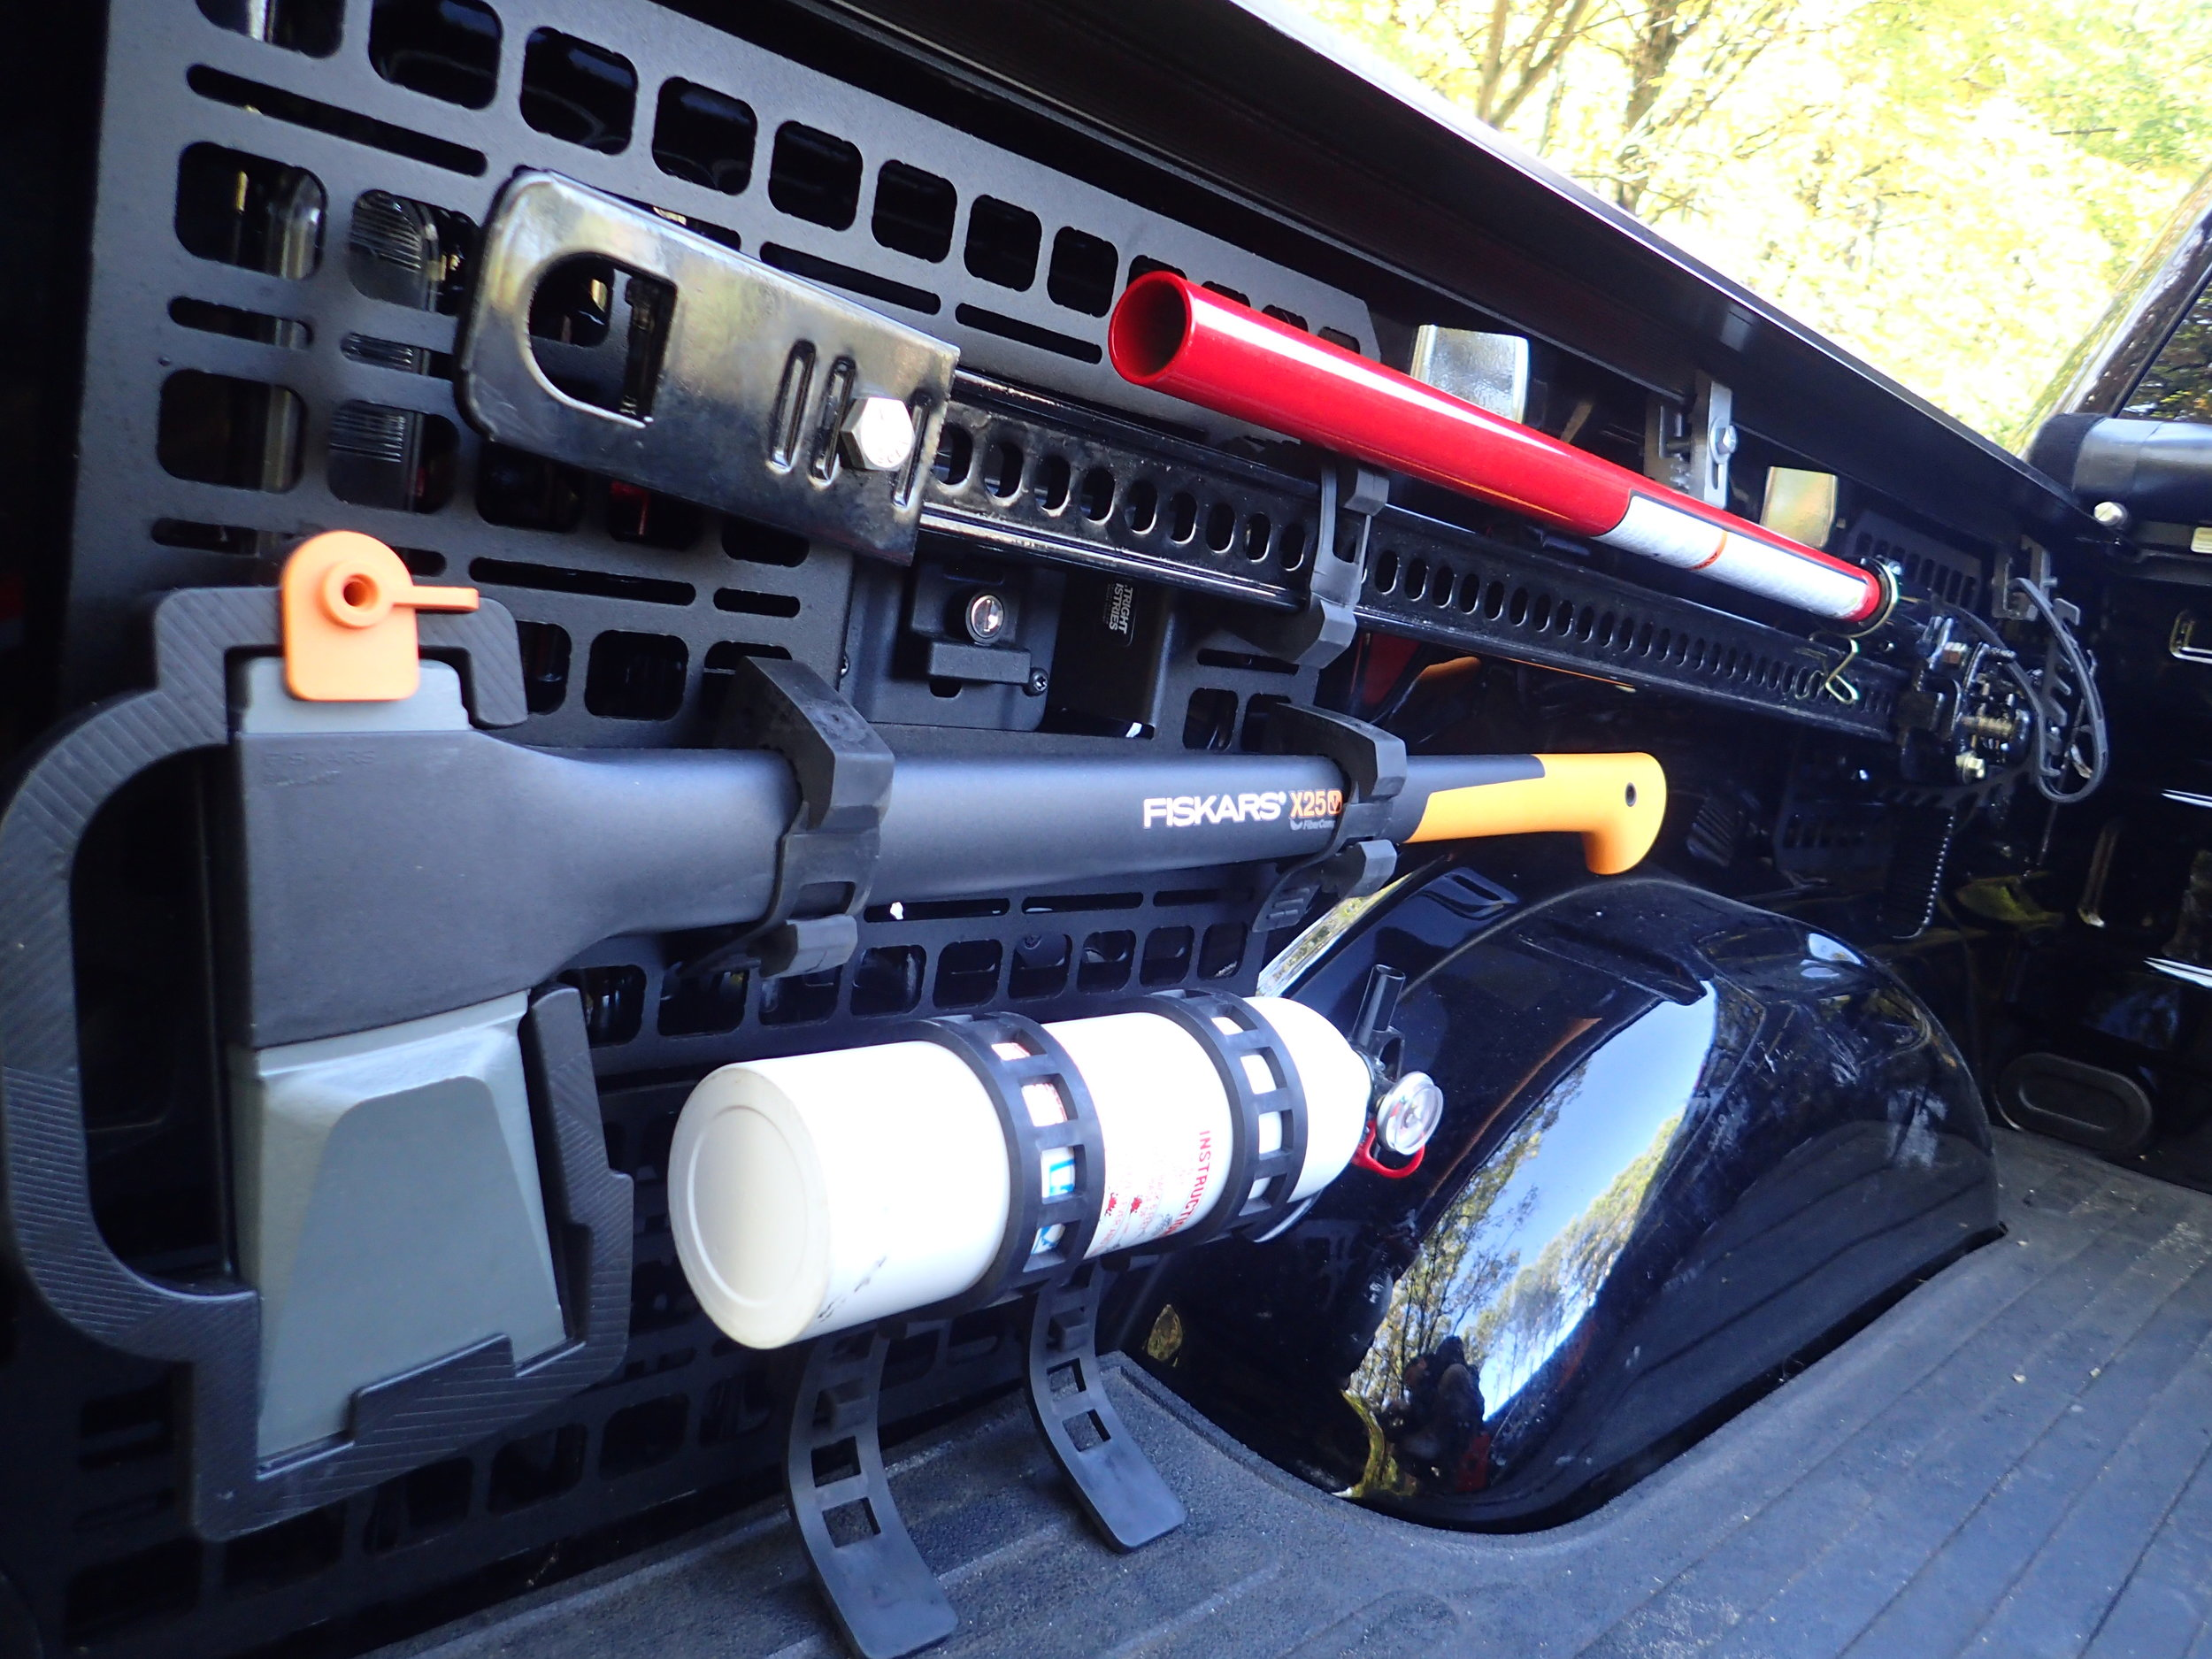 ford f-150 bedside rack raptor axe hi lift jack